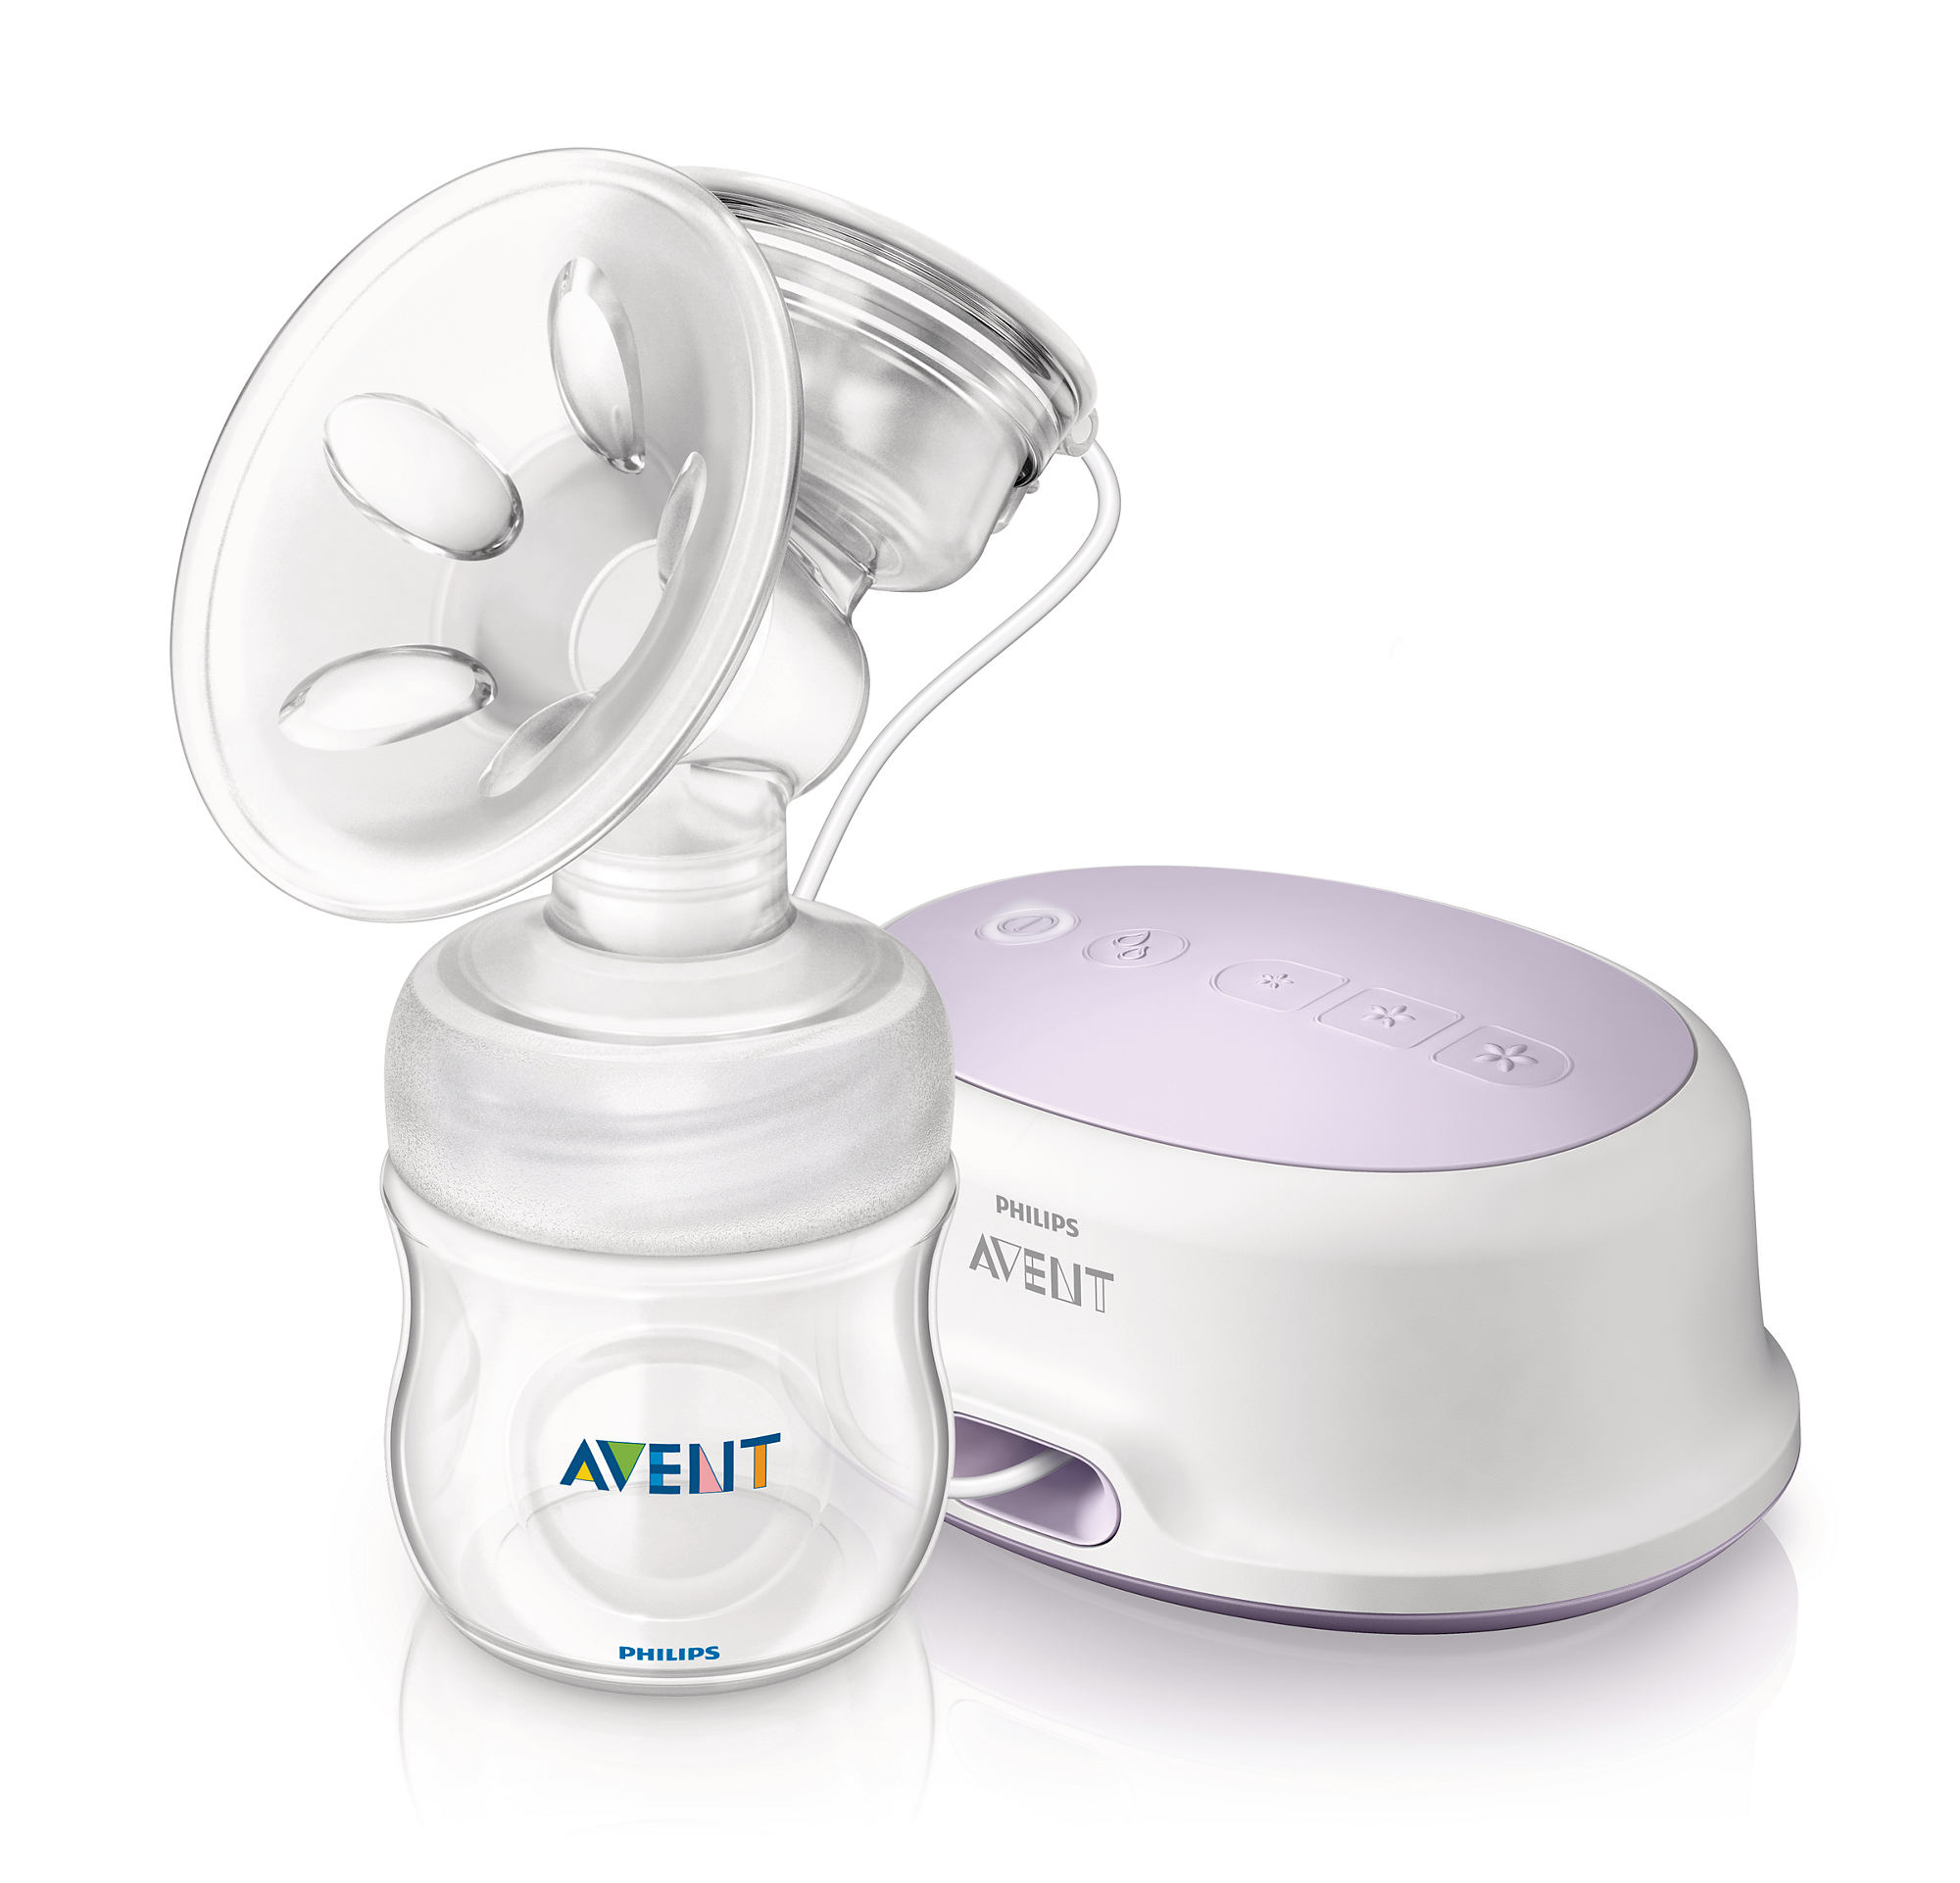 Philips Avent 3-in-1 Single Electric Breastpump Super Good Bundle + Steam Sterilizer + Warmer + FREE Gifts!